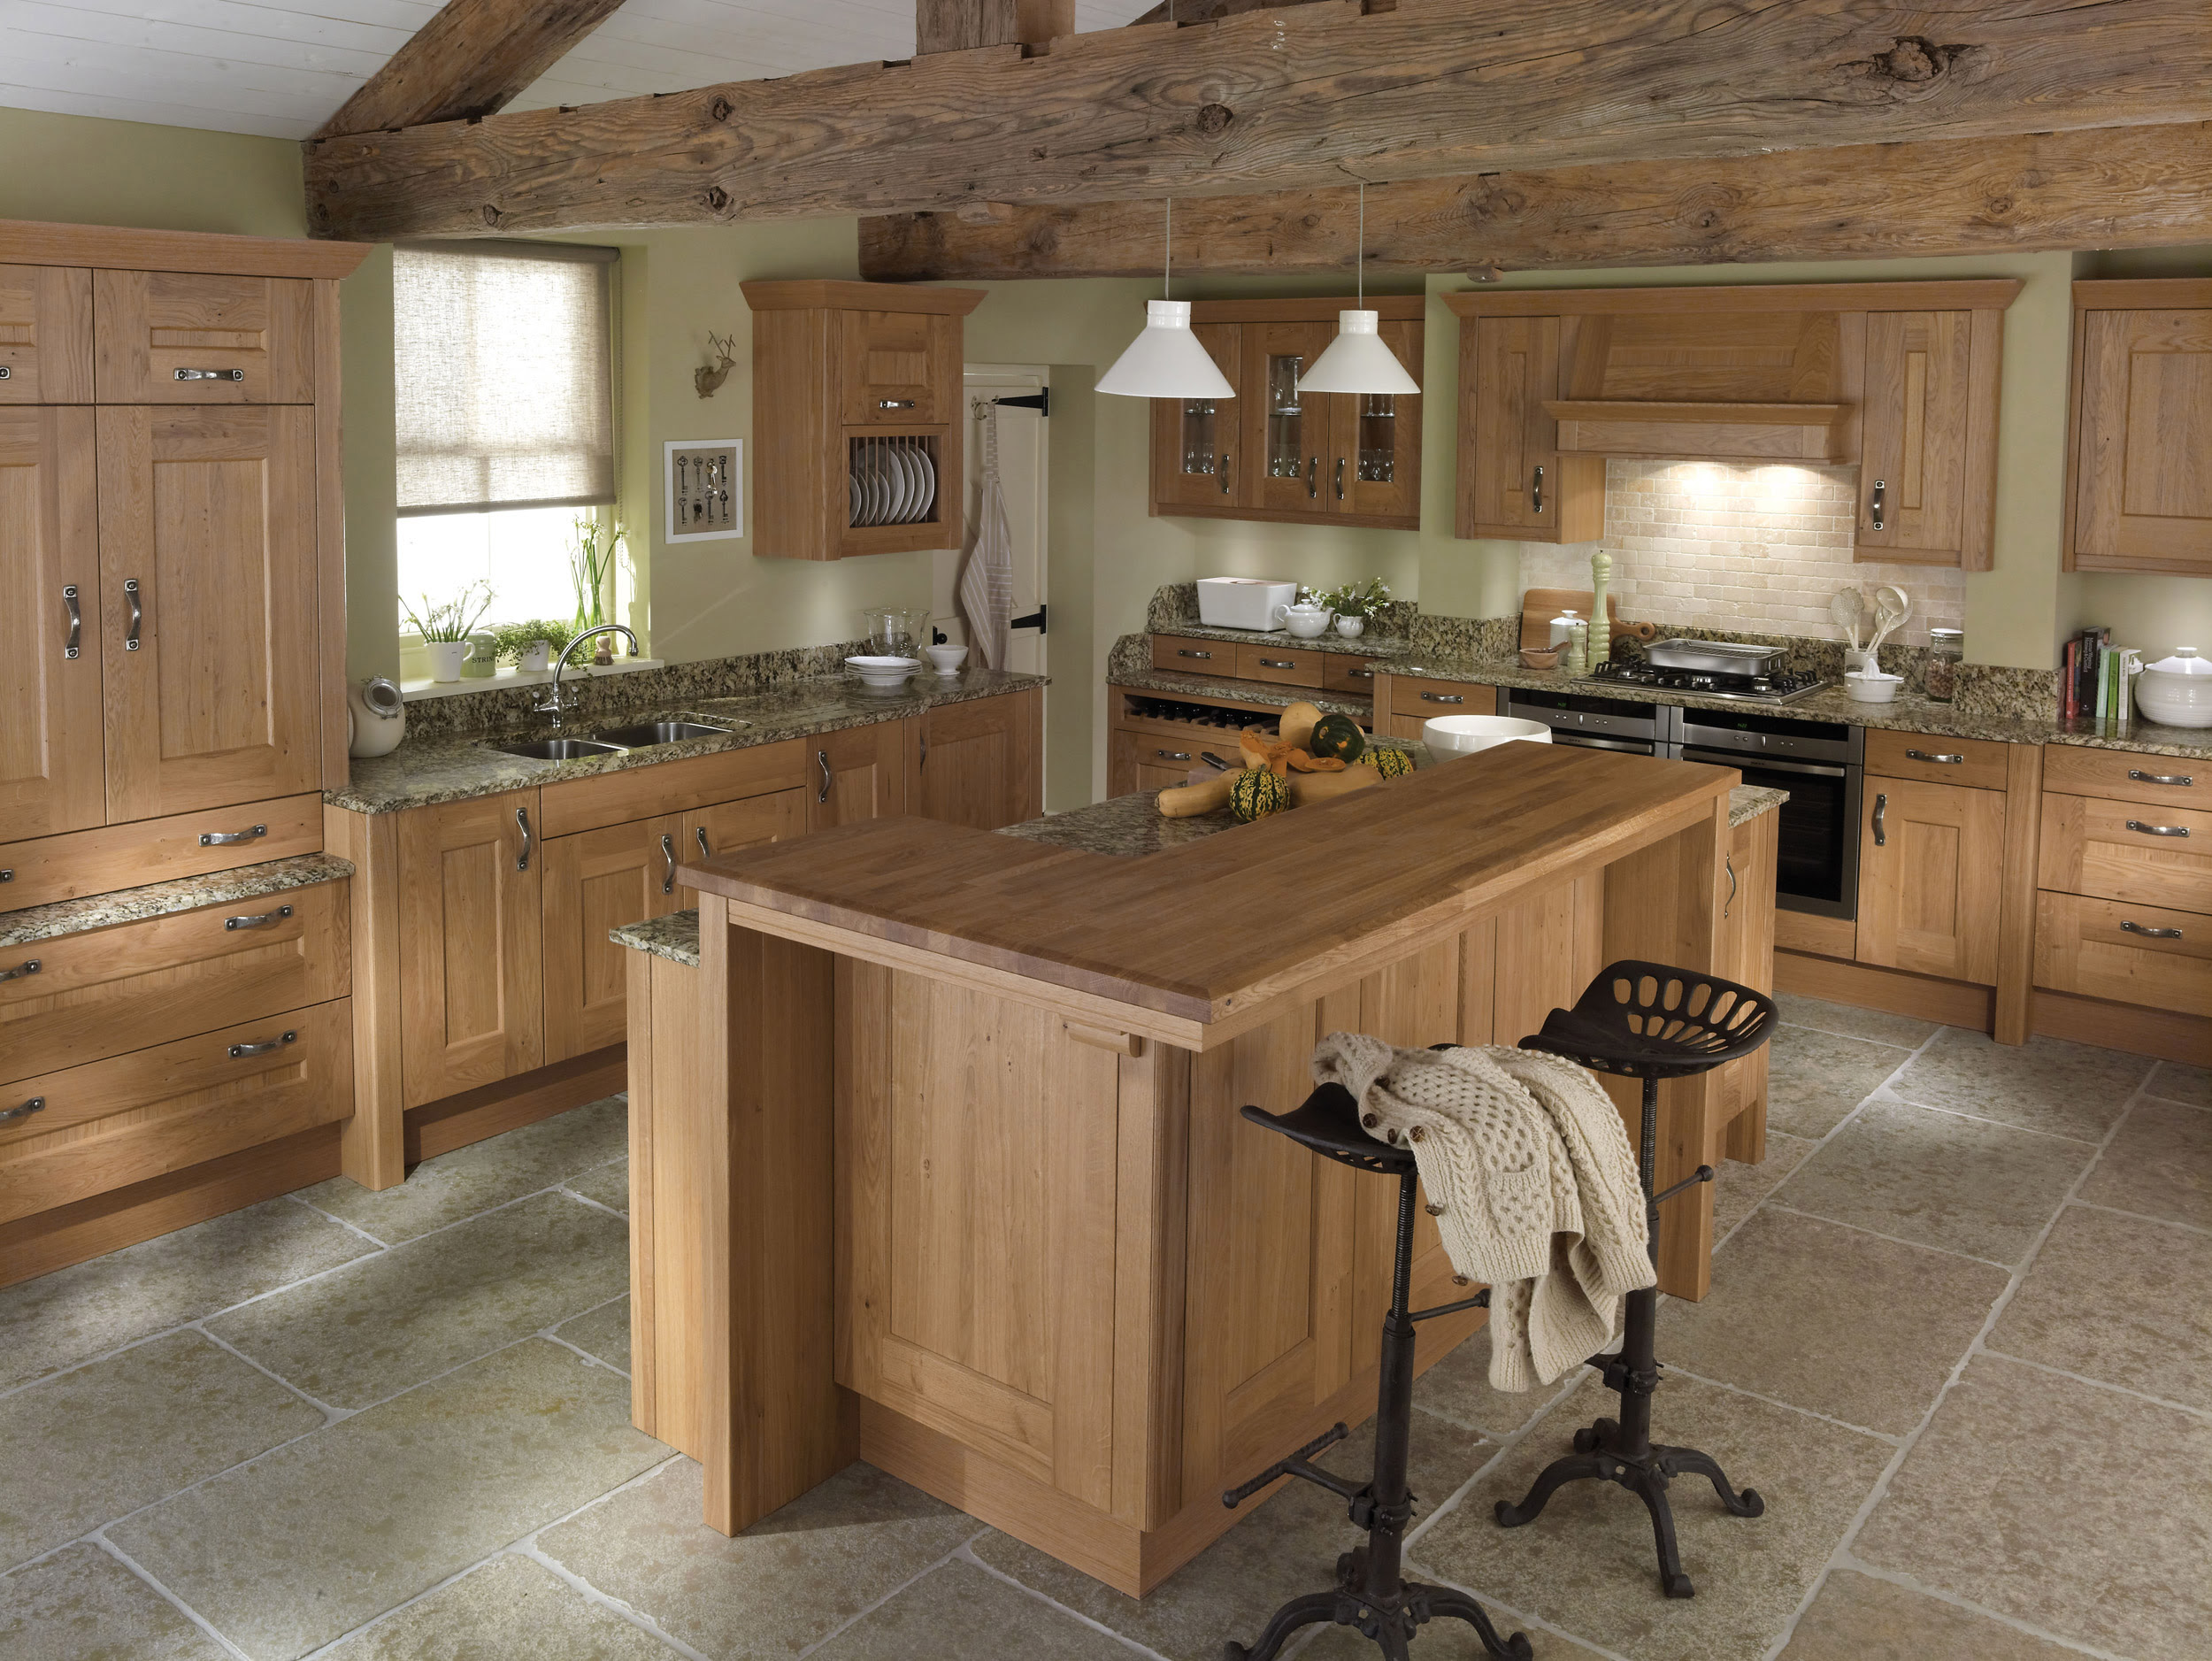 Rustic Kitchen Island Wooden Made Furnished with Black High Chairs